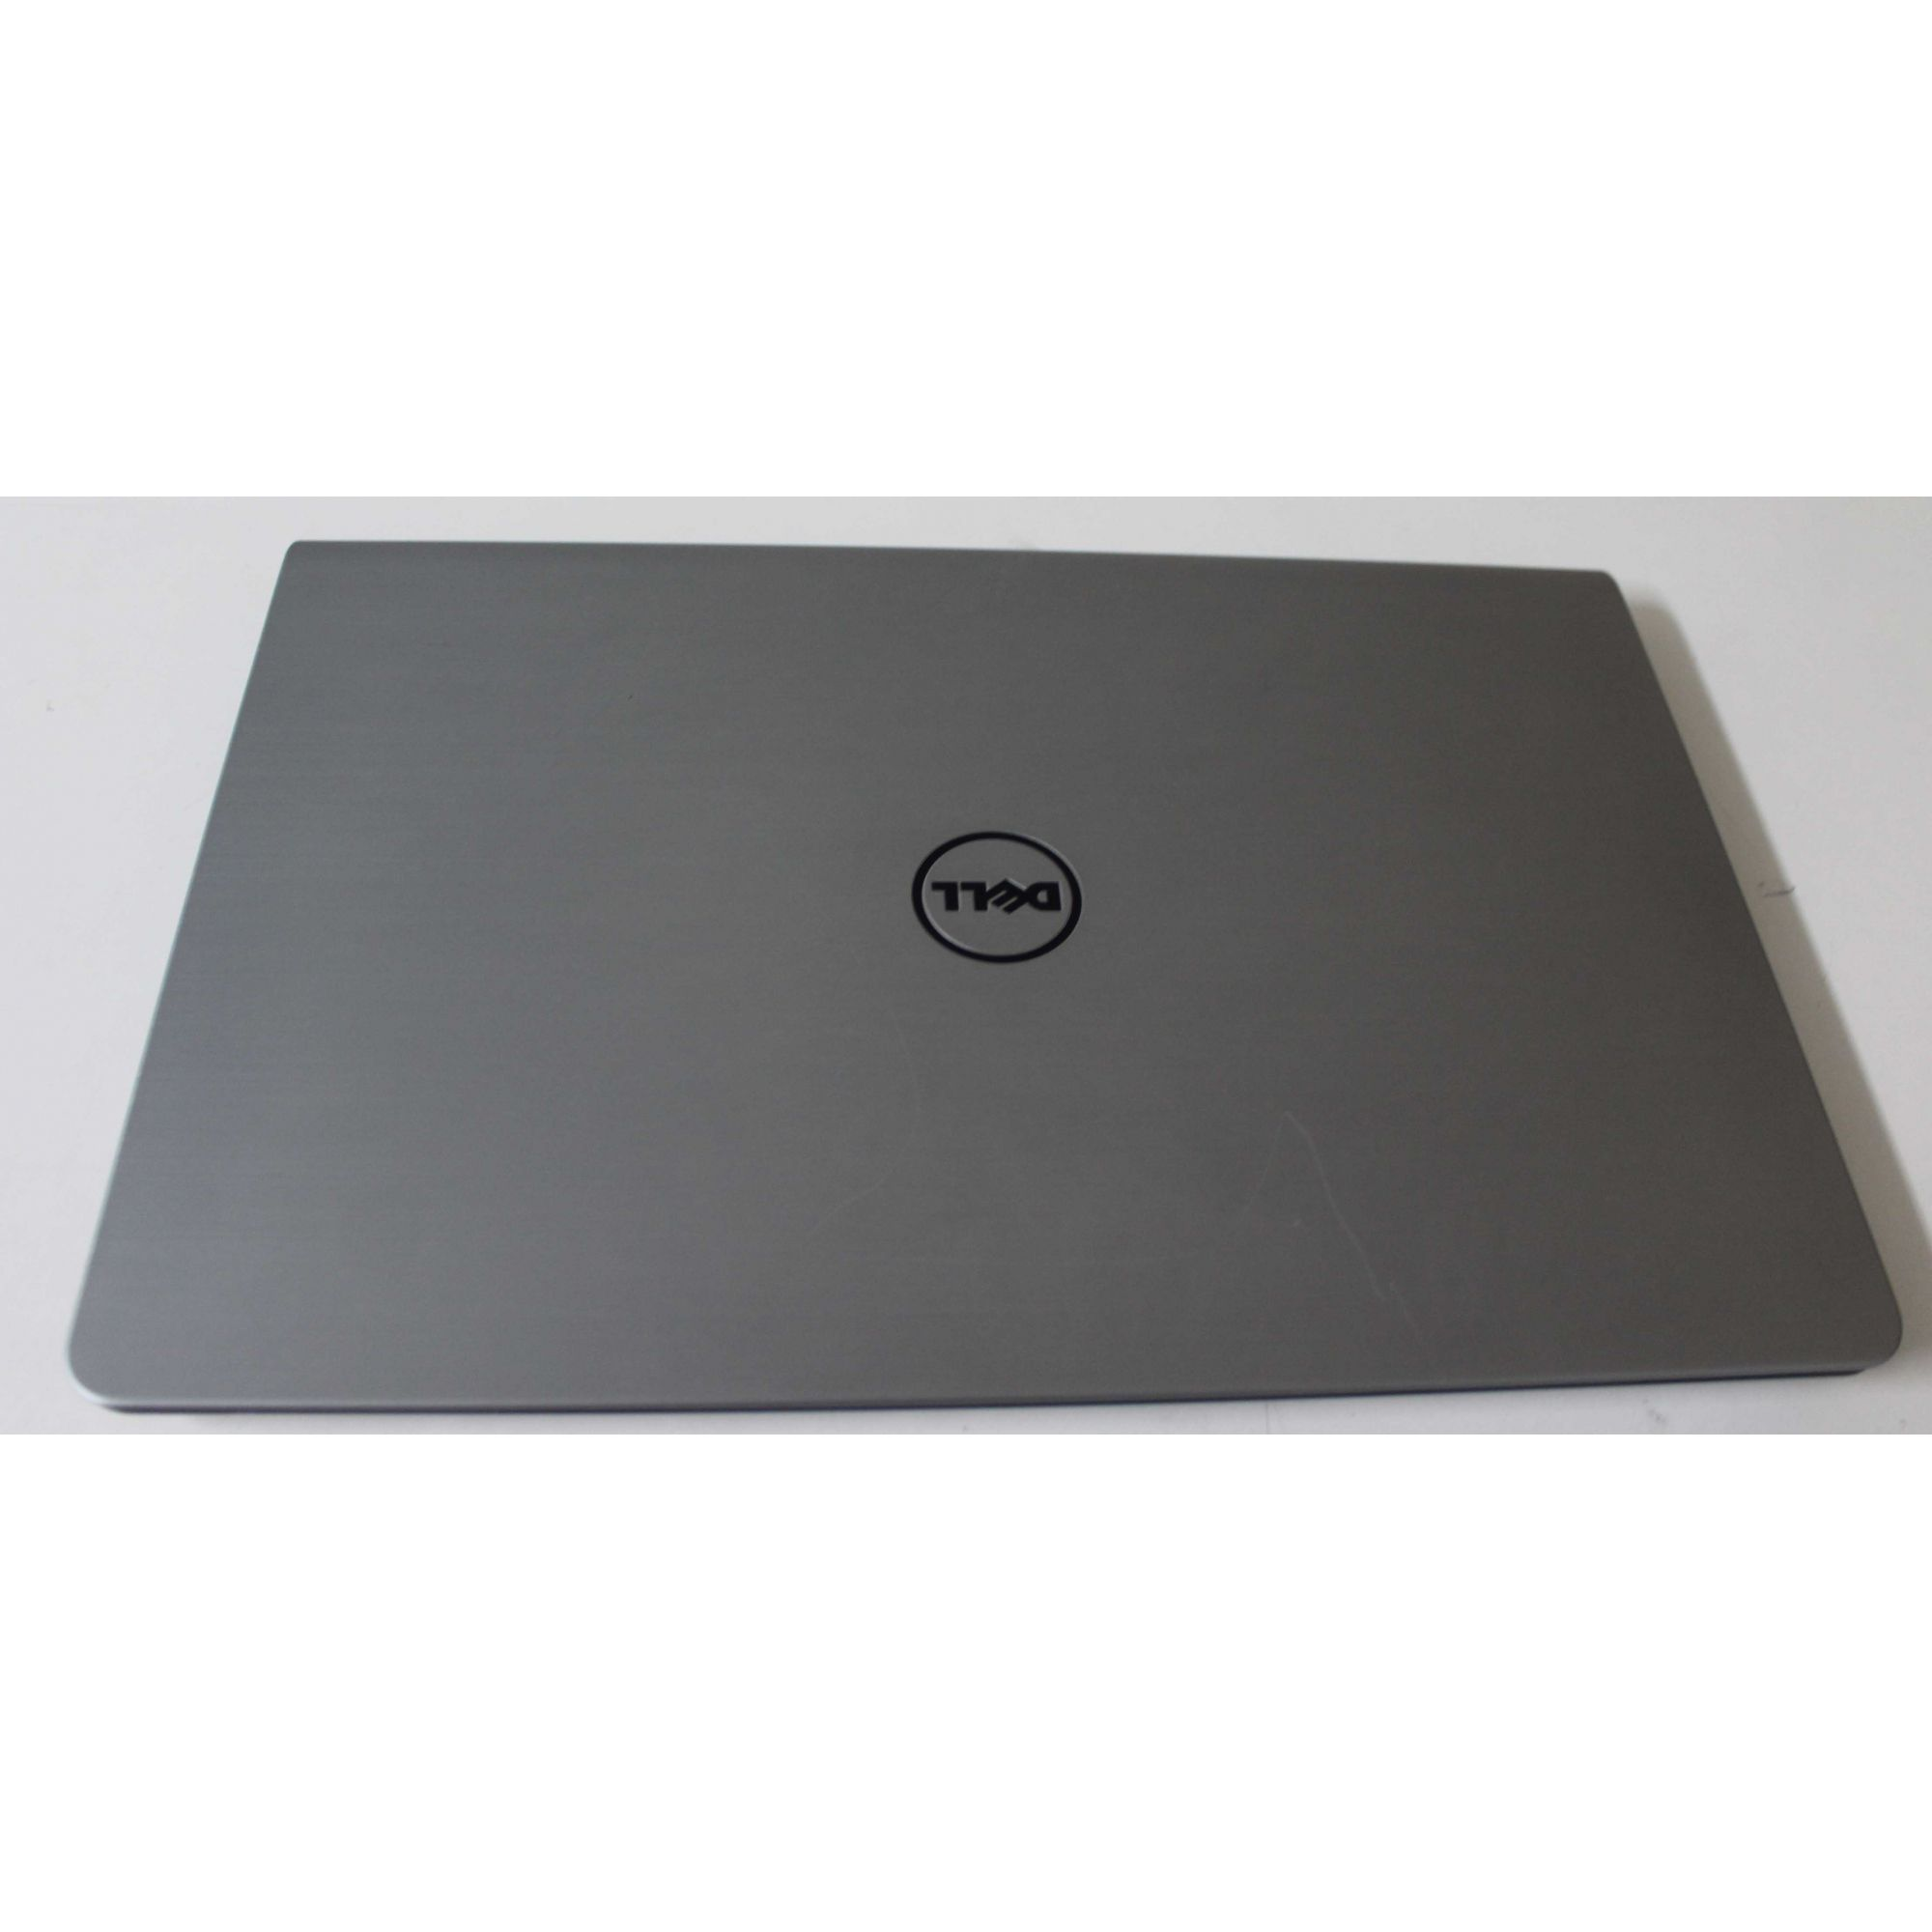 "Notebook Dell Inspiron 5547 15.6"" Intel Core i5 1.7GHz 8GB HD-1TB + Alphanumérico (2GB Dedicada)"